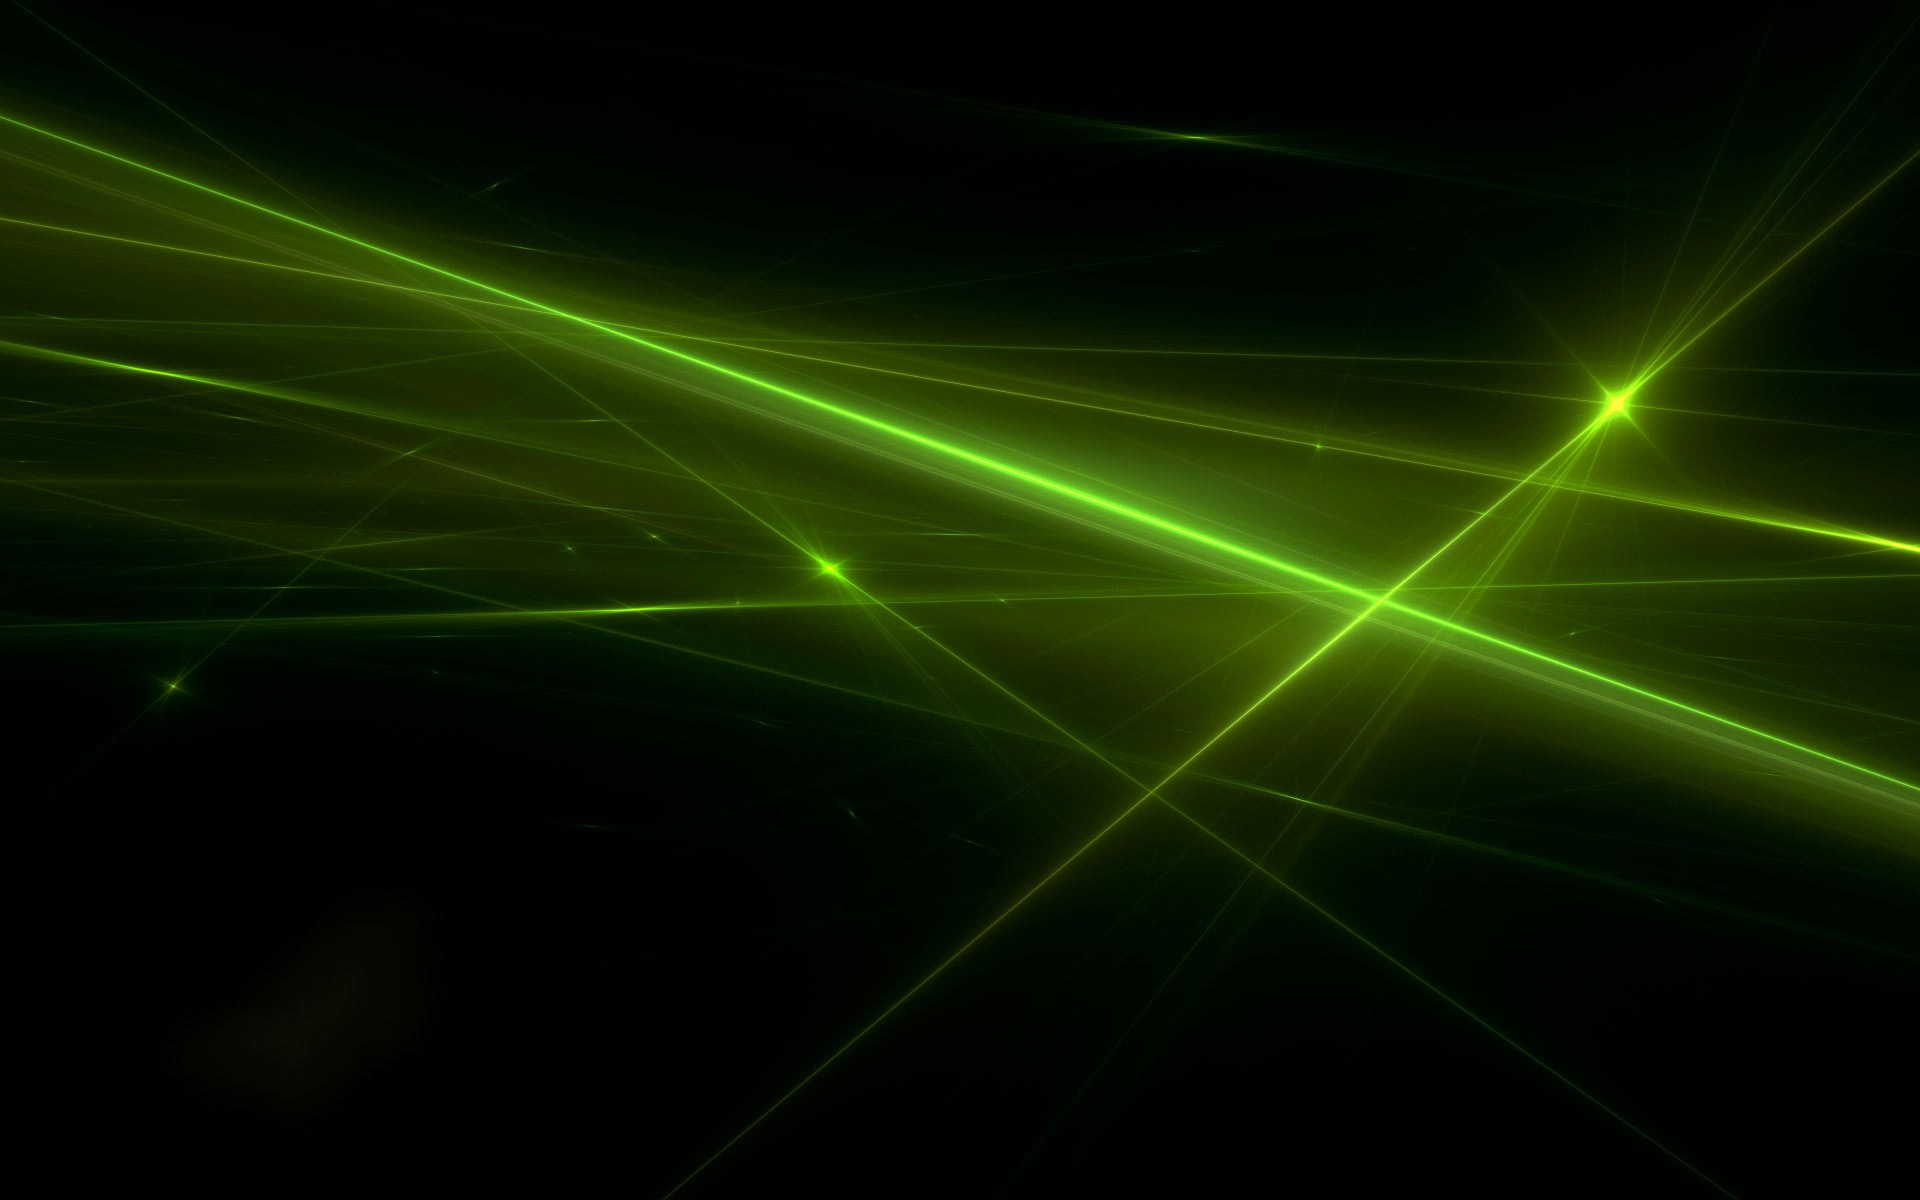 ... rating give green rays abstract background 1 5 give green HTML code